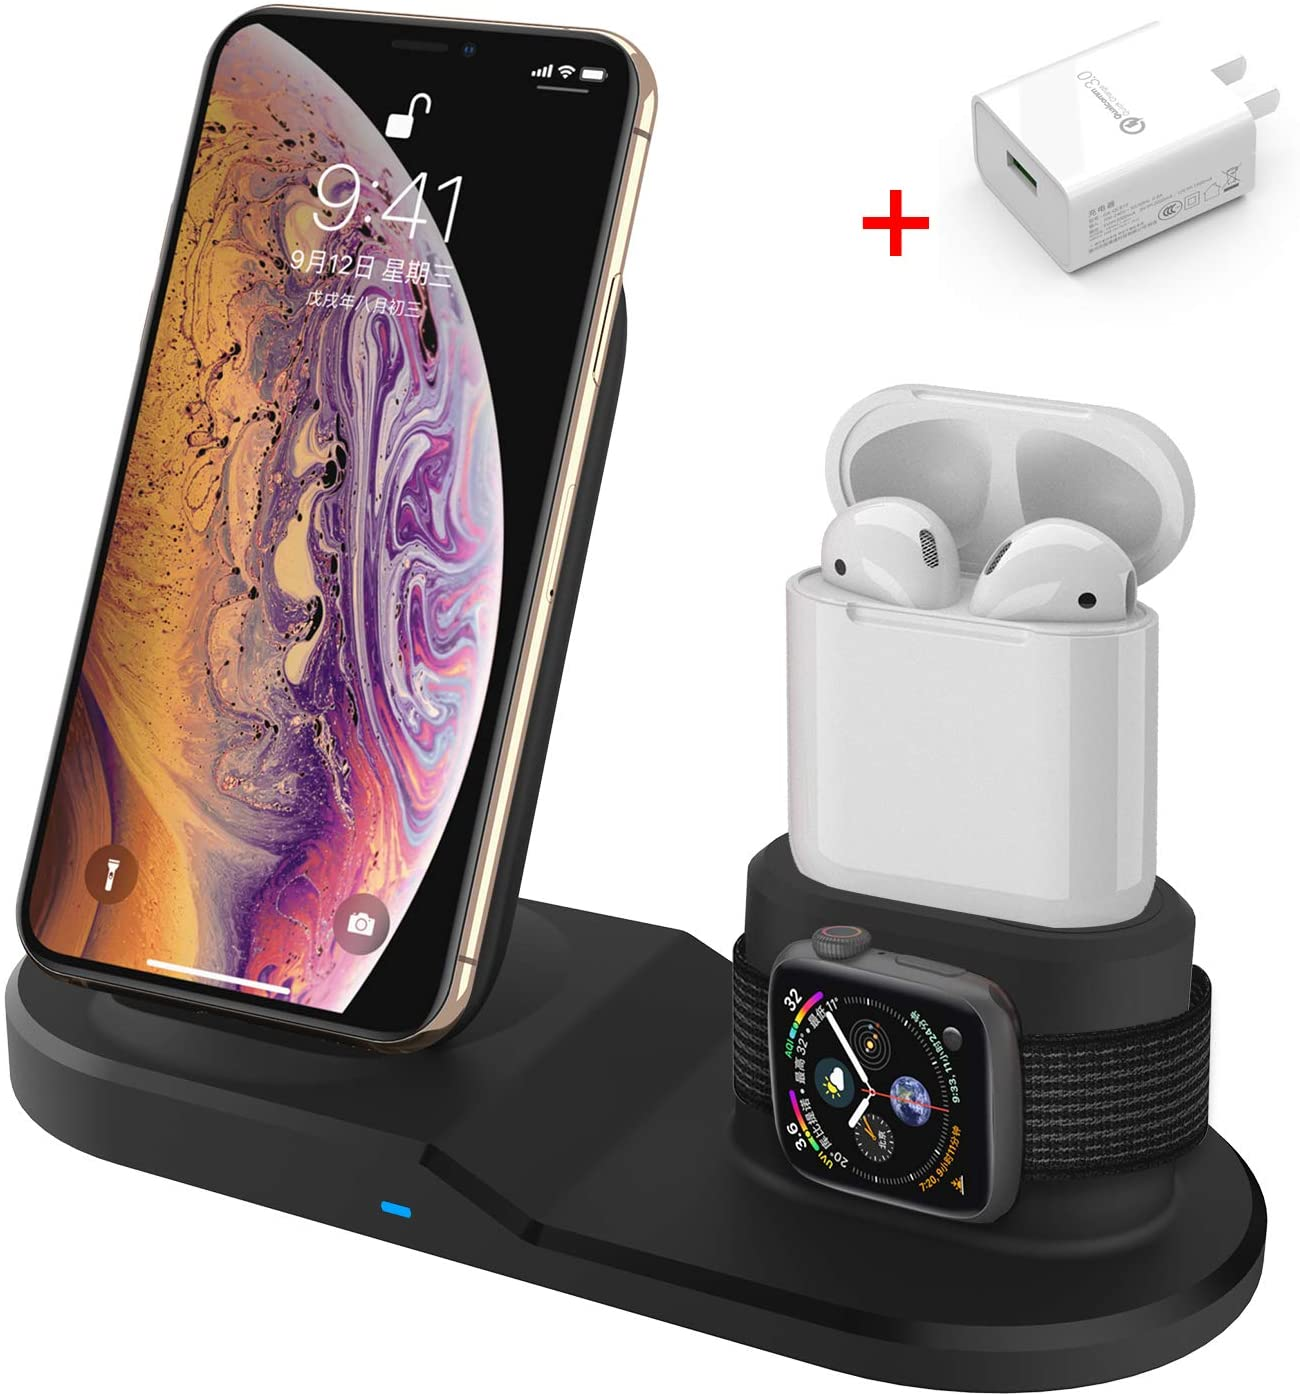 Wireless Charger, 3 in 1 Wireless Charging Stand for Apple Watch iPhone Airpods, Wireless Charging Station Phone Charging Stand for iPhone X/XS/XR/Xs Max/8/8 Plus Apple Watch 5 4 3 2 1 Airpods 1 2